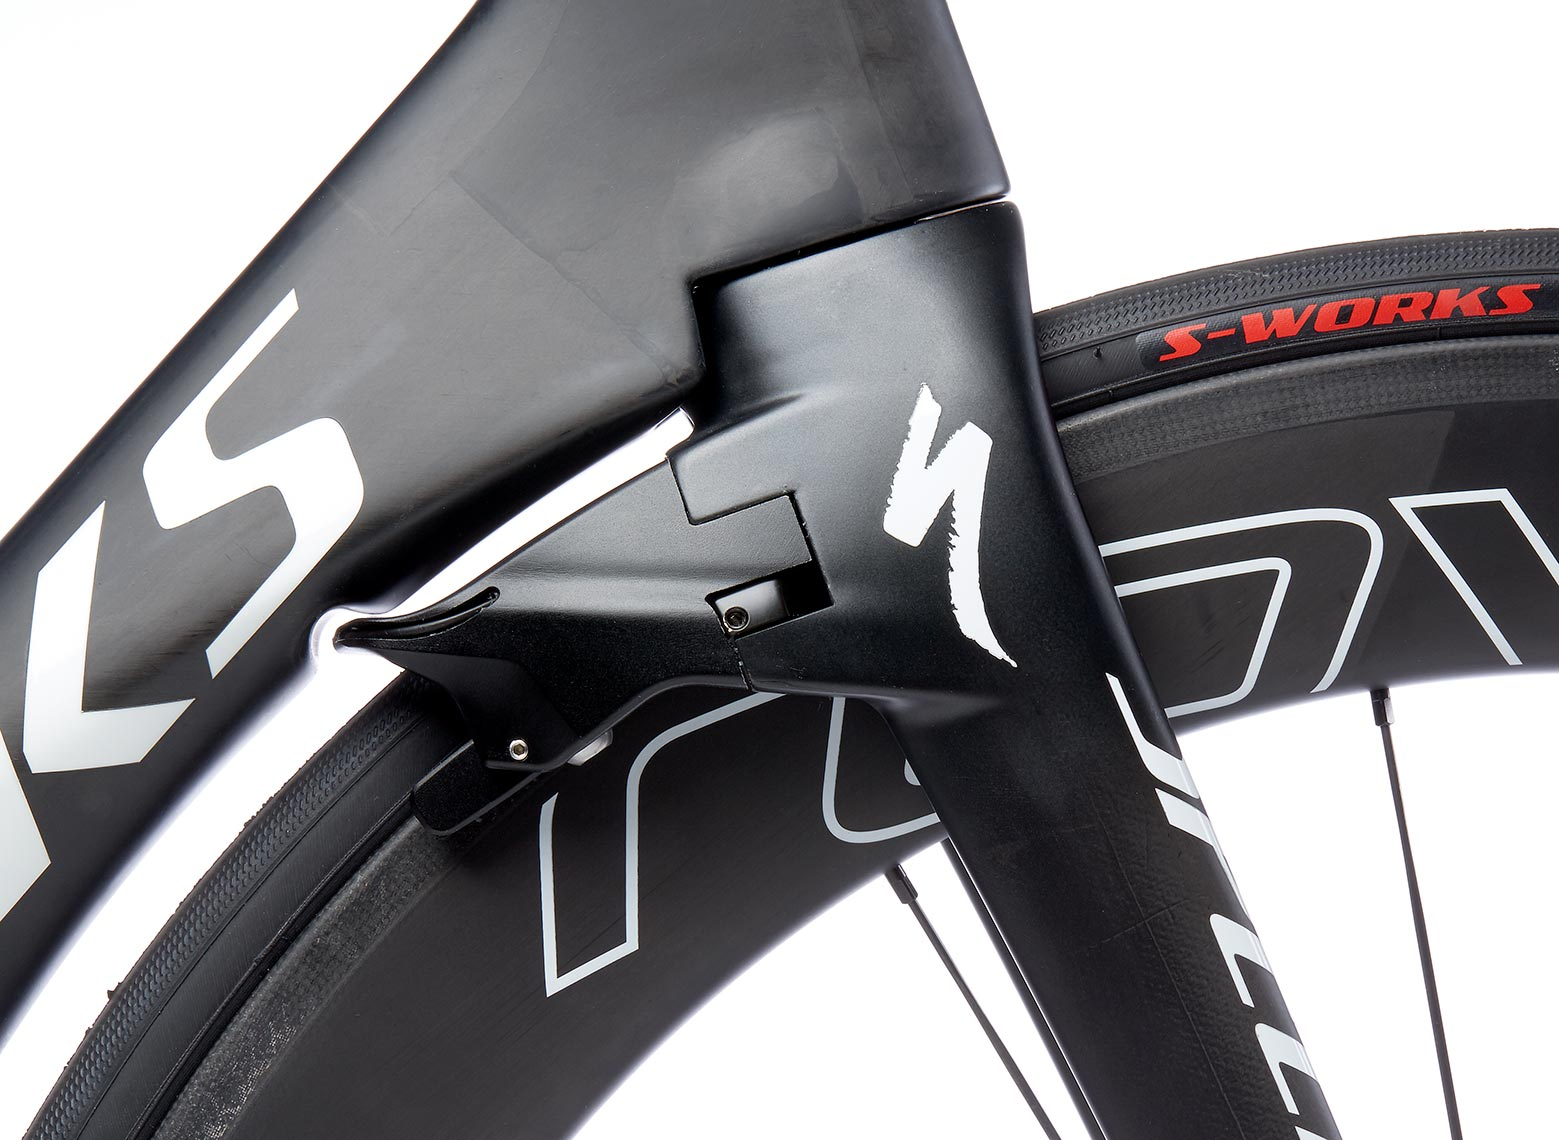 Specialized_Venge_Front_Brake099_w1_shrpnd_RESIZED_FOR_WEB